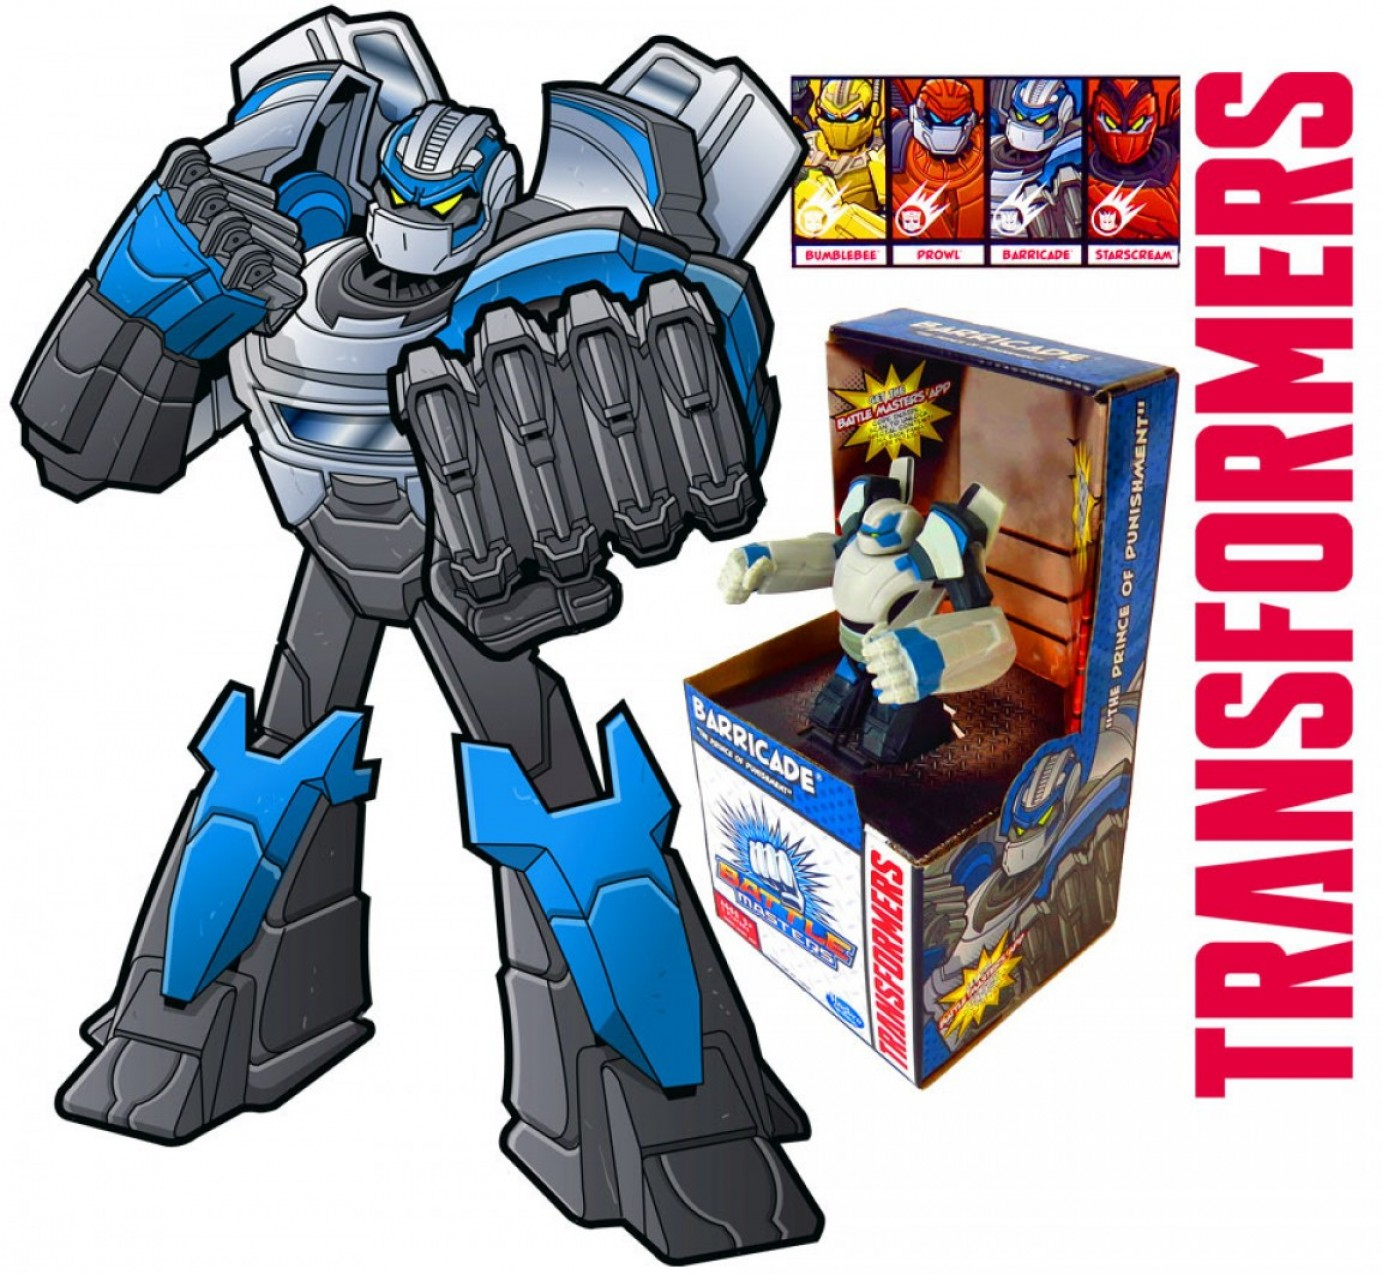 Transformers Vector Art: Transformers Vector Character Designs Toy Packaging I